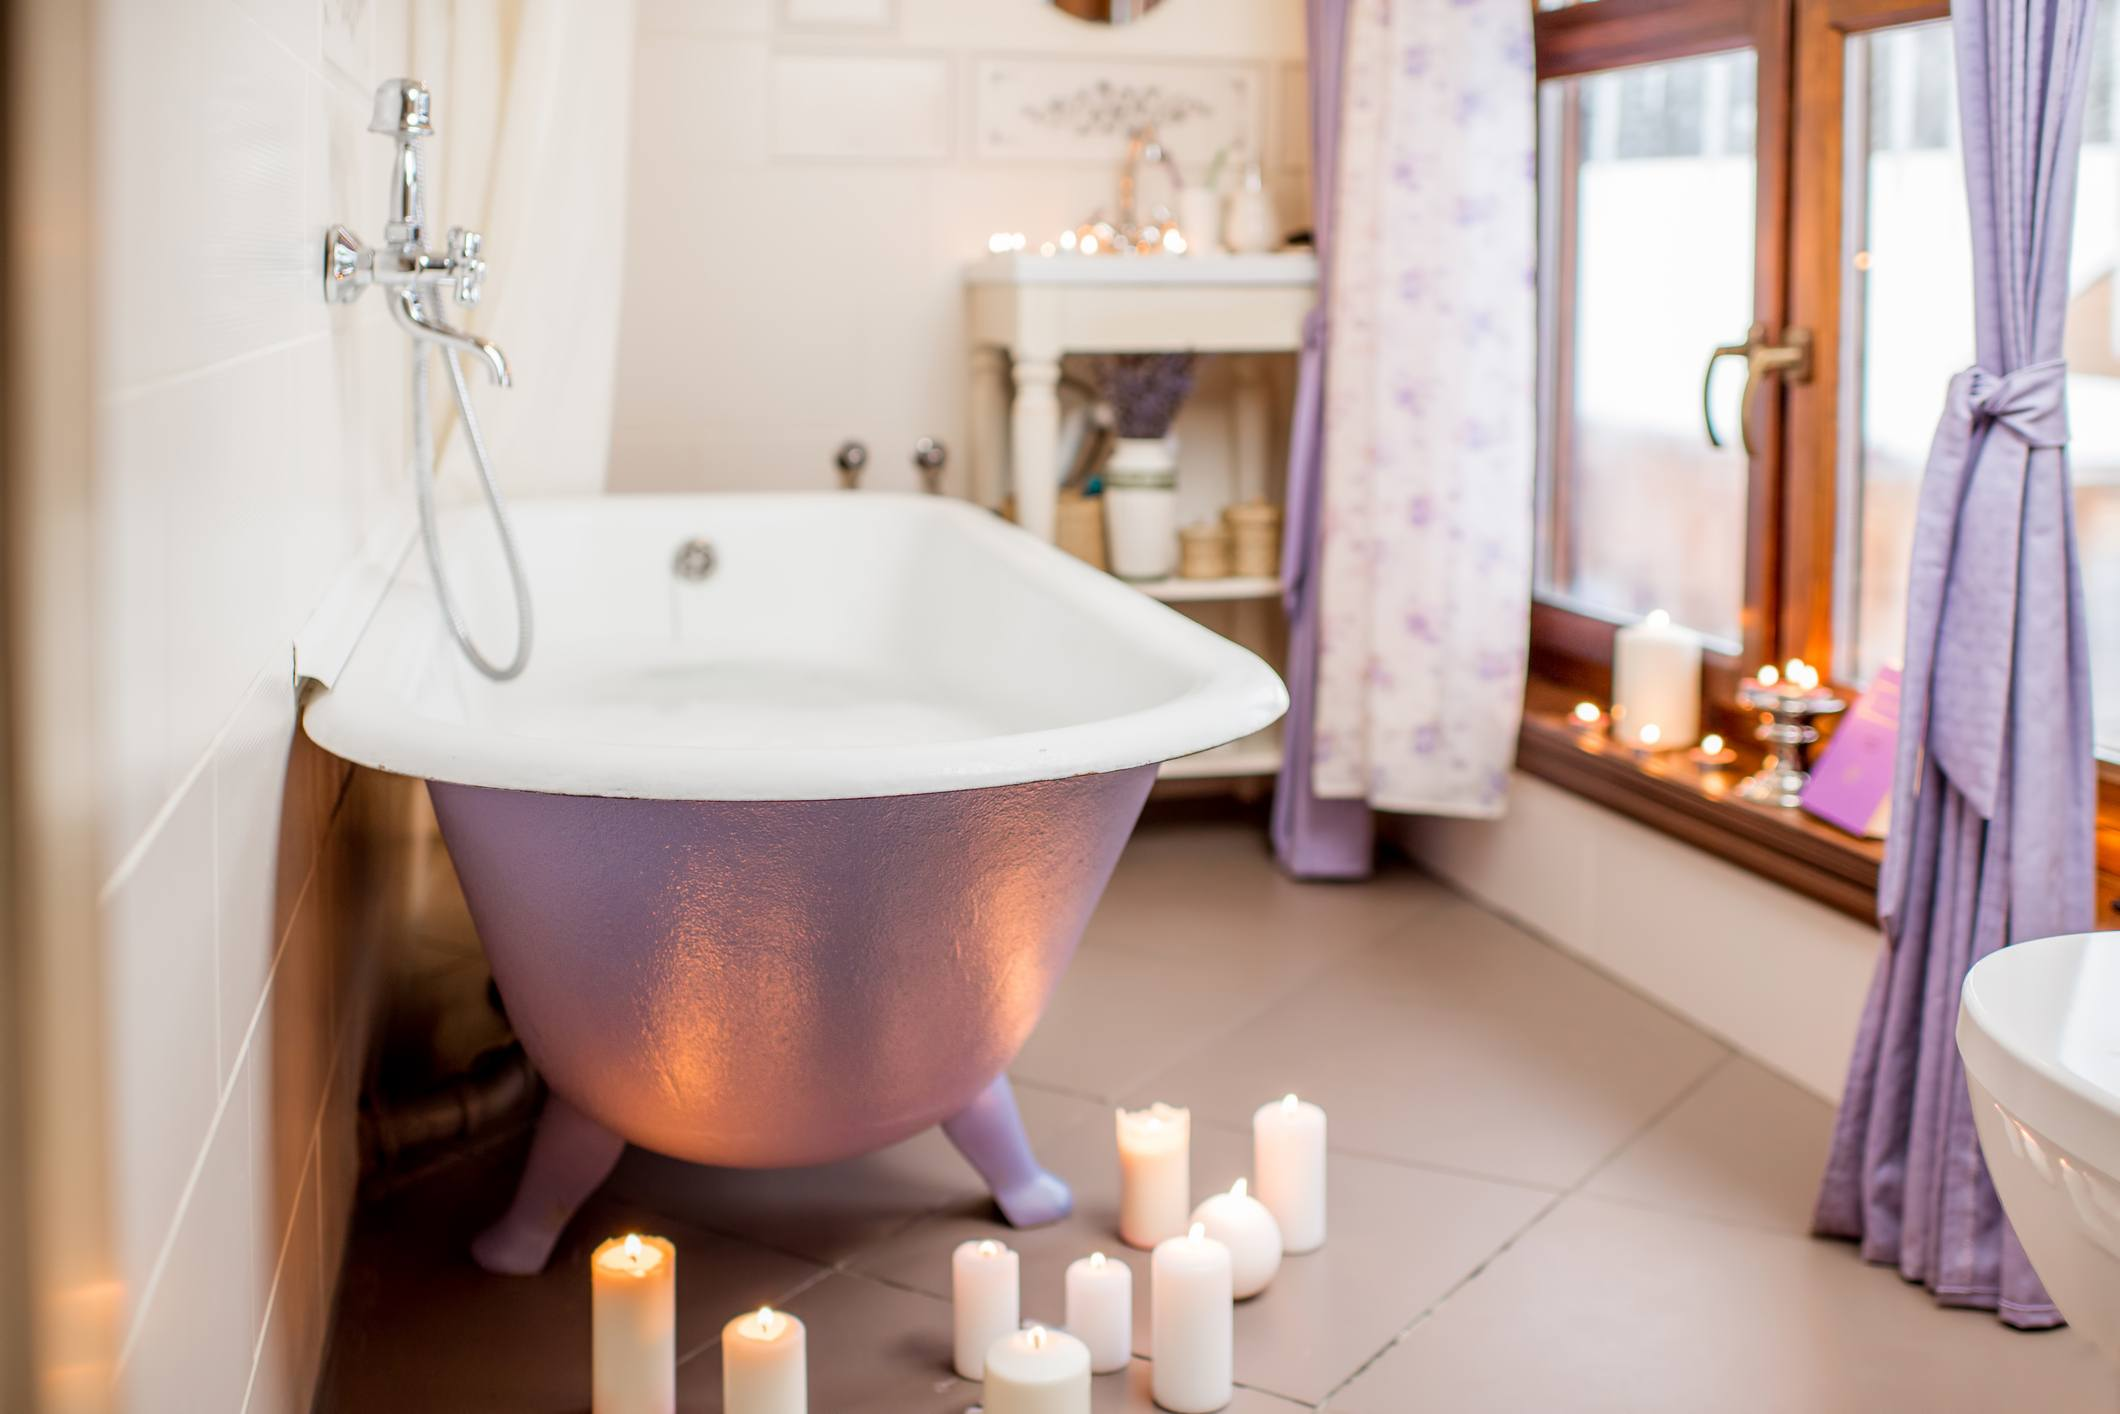 Bathroom interior with retro violet bath decorated with candles